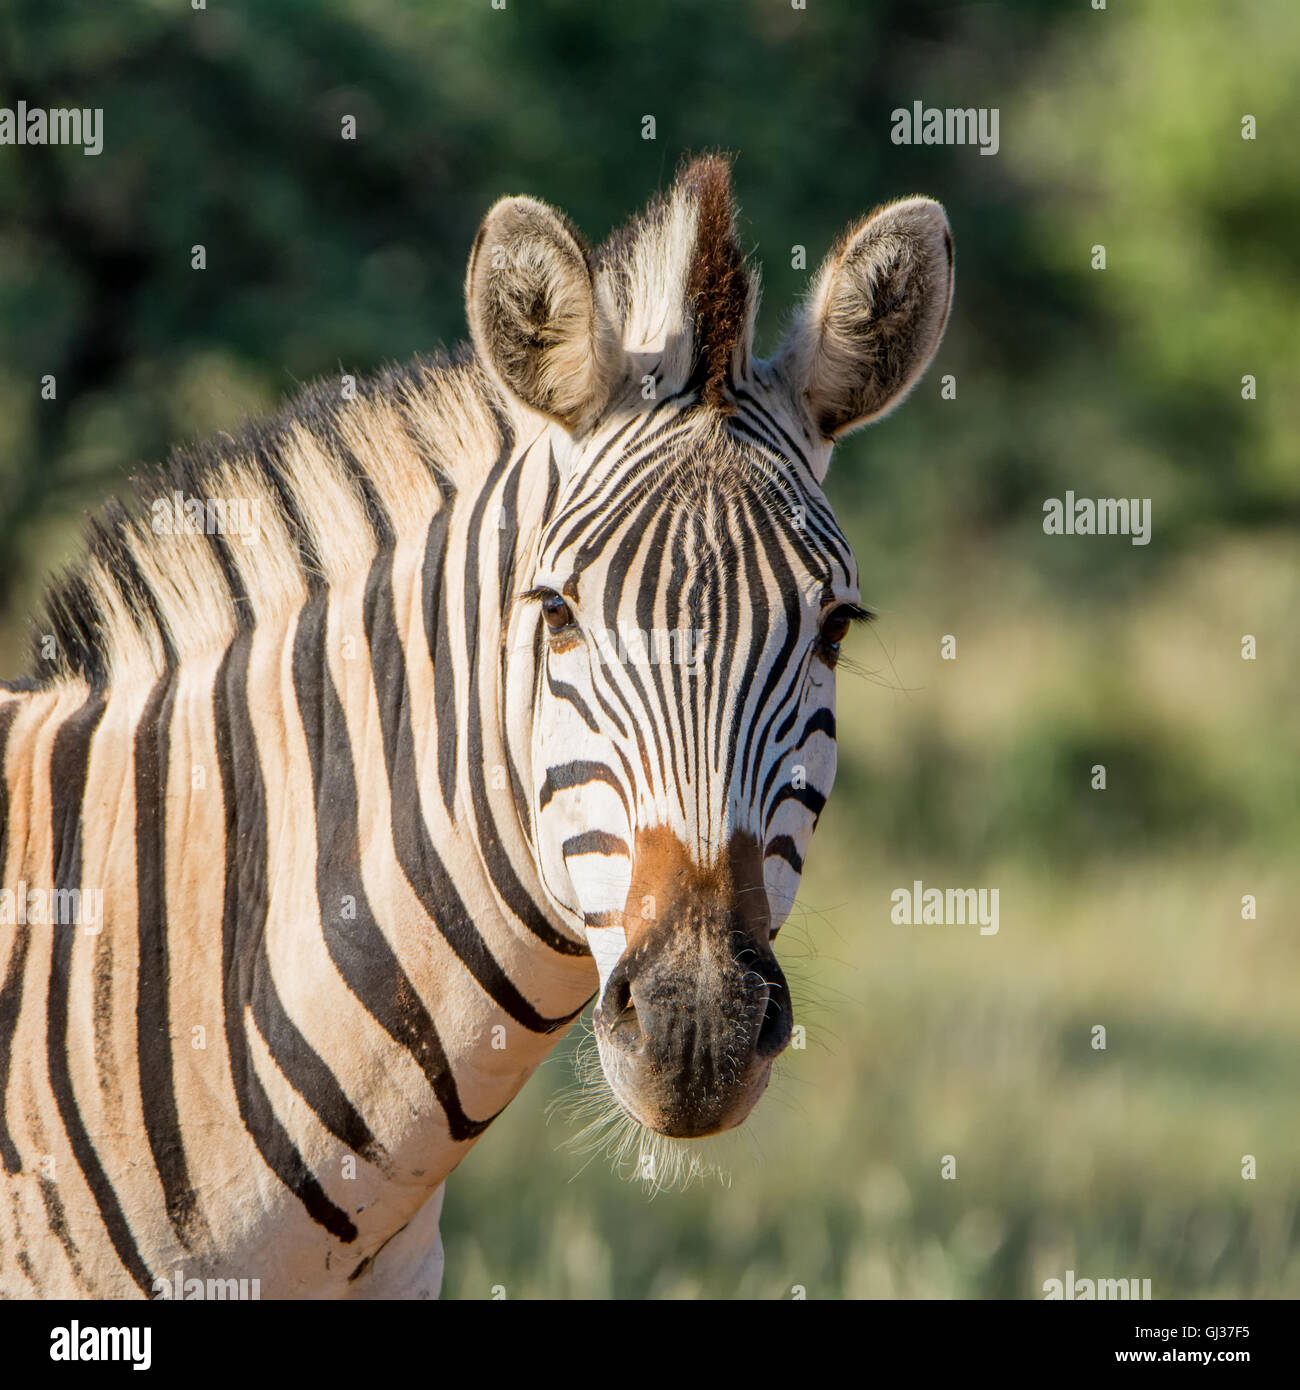 Portrait of a Burchell's Zebra in Southern African savannah - Stock Image